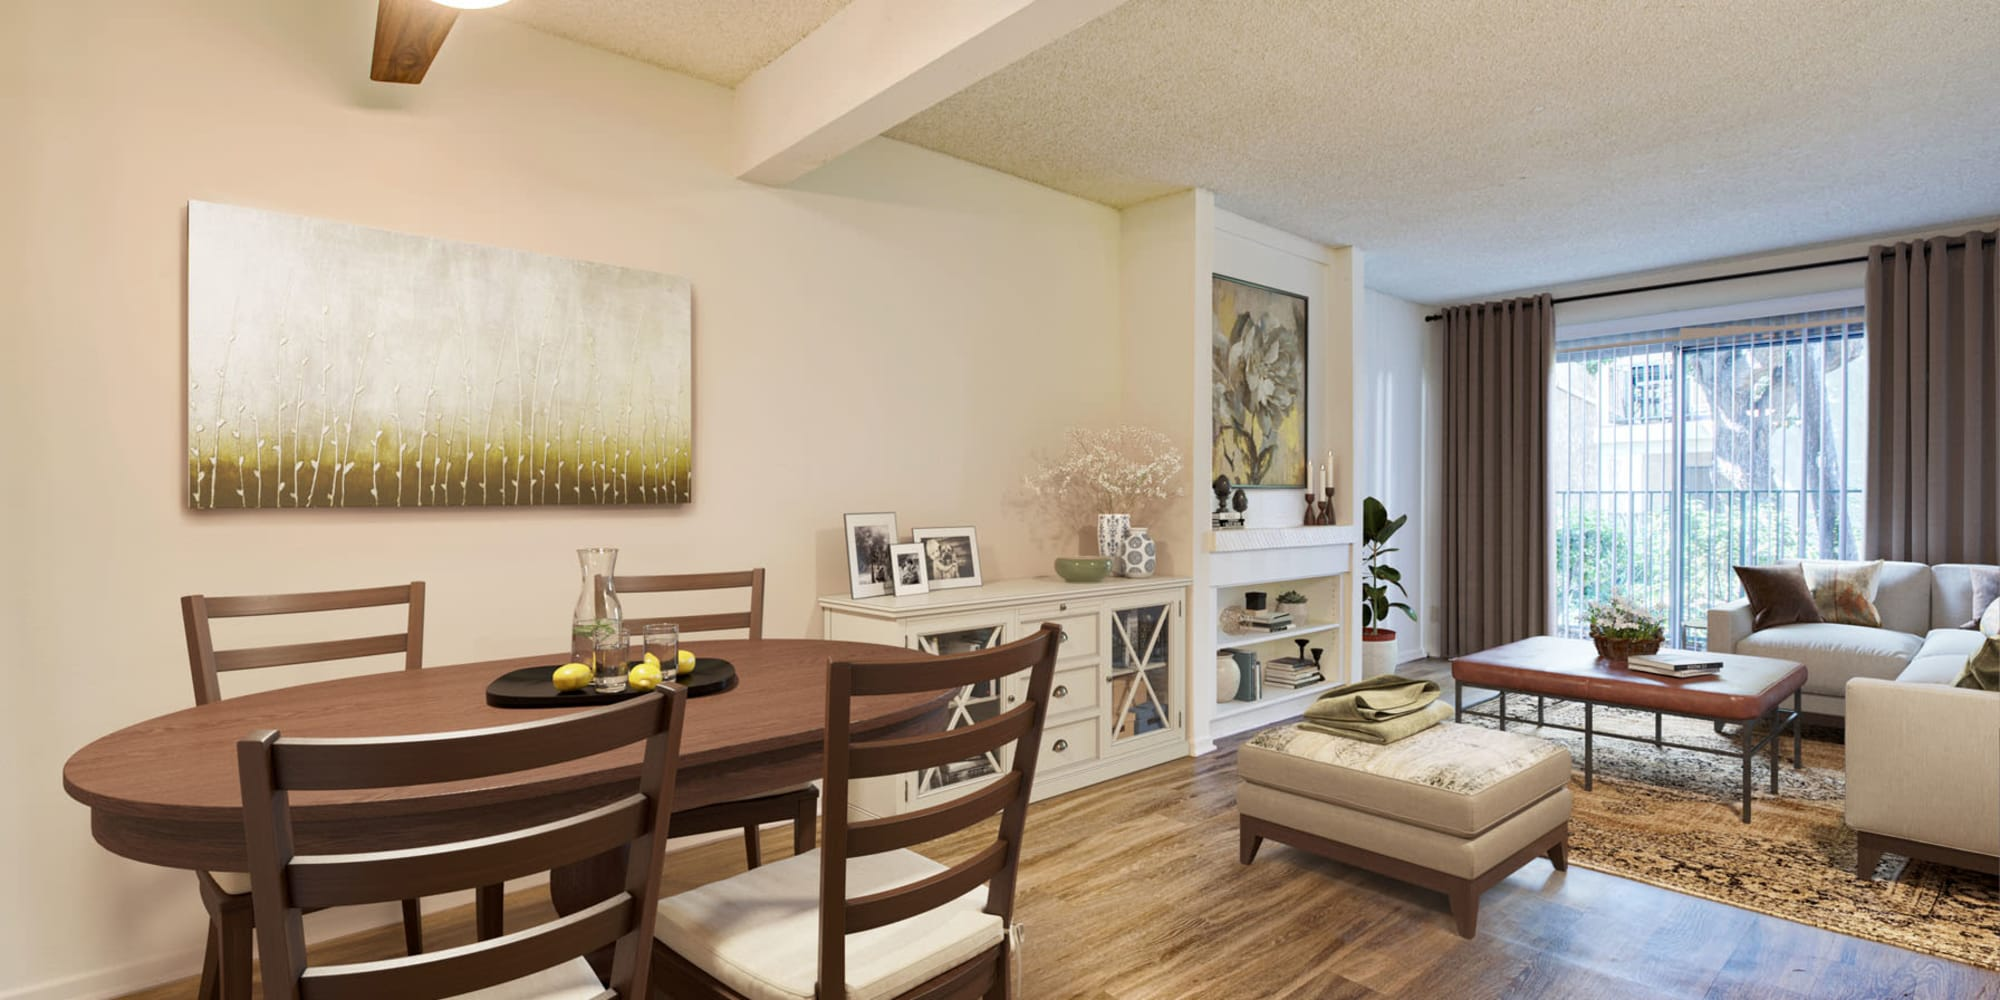 Spacious living areas in a three bedroom apartment at Village Pointe in Northridge, California